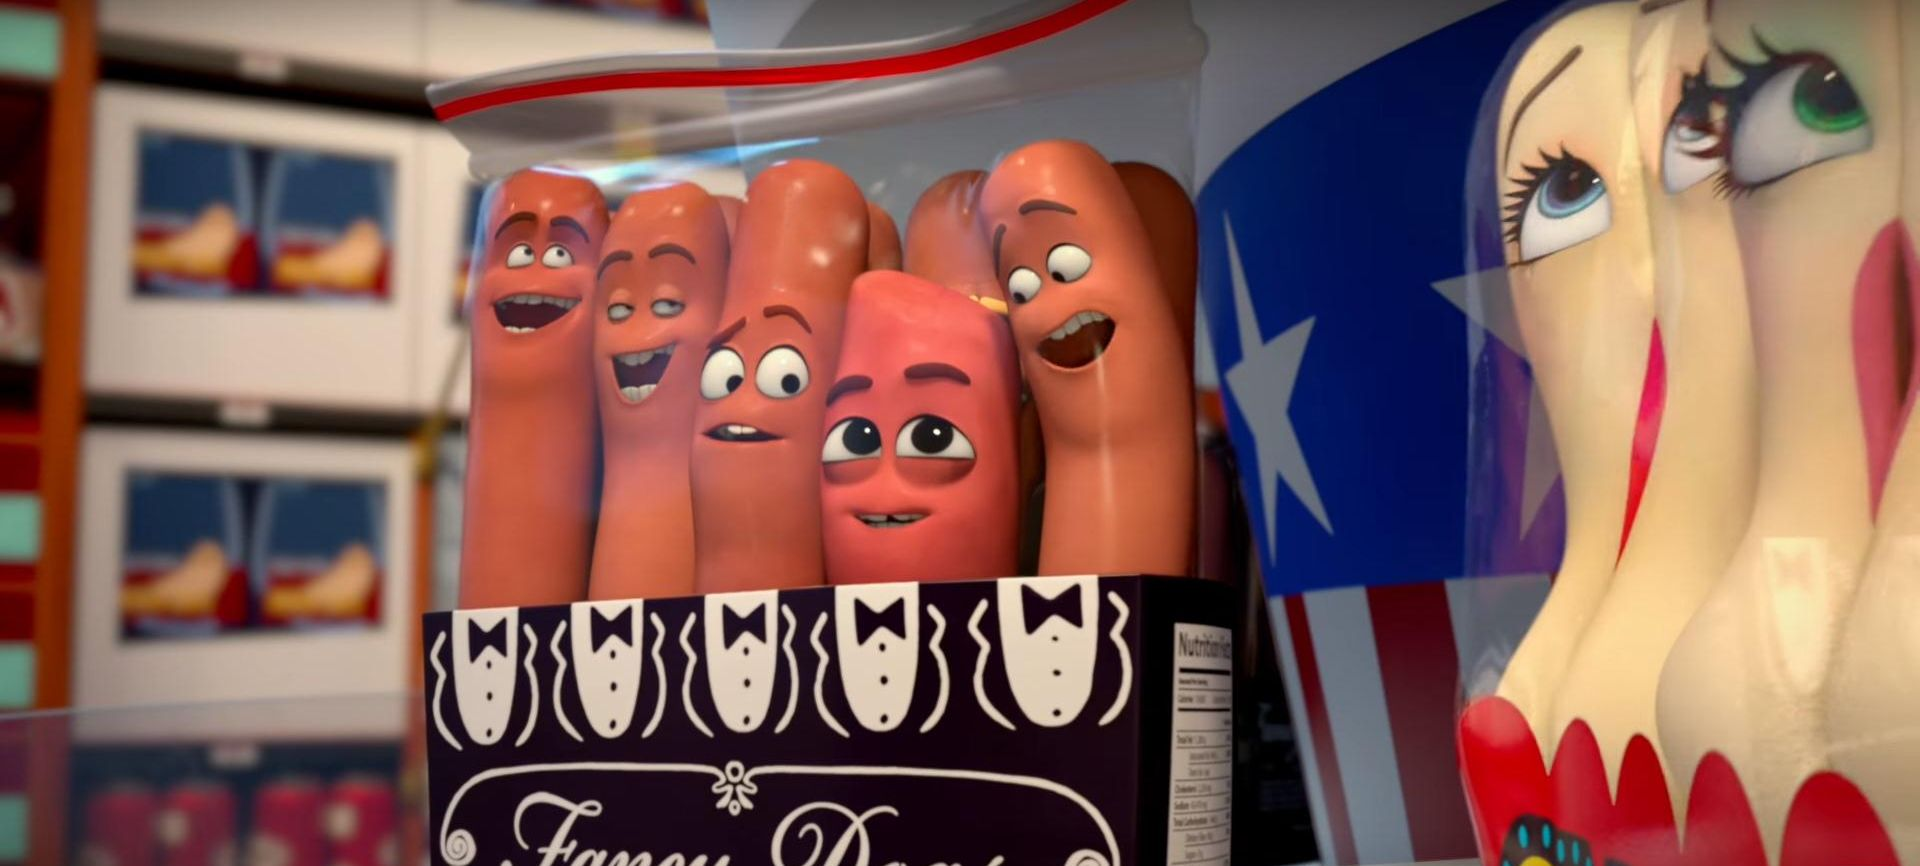 VIDEO: Najave za animirani film 'Sausage party'